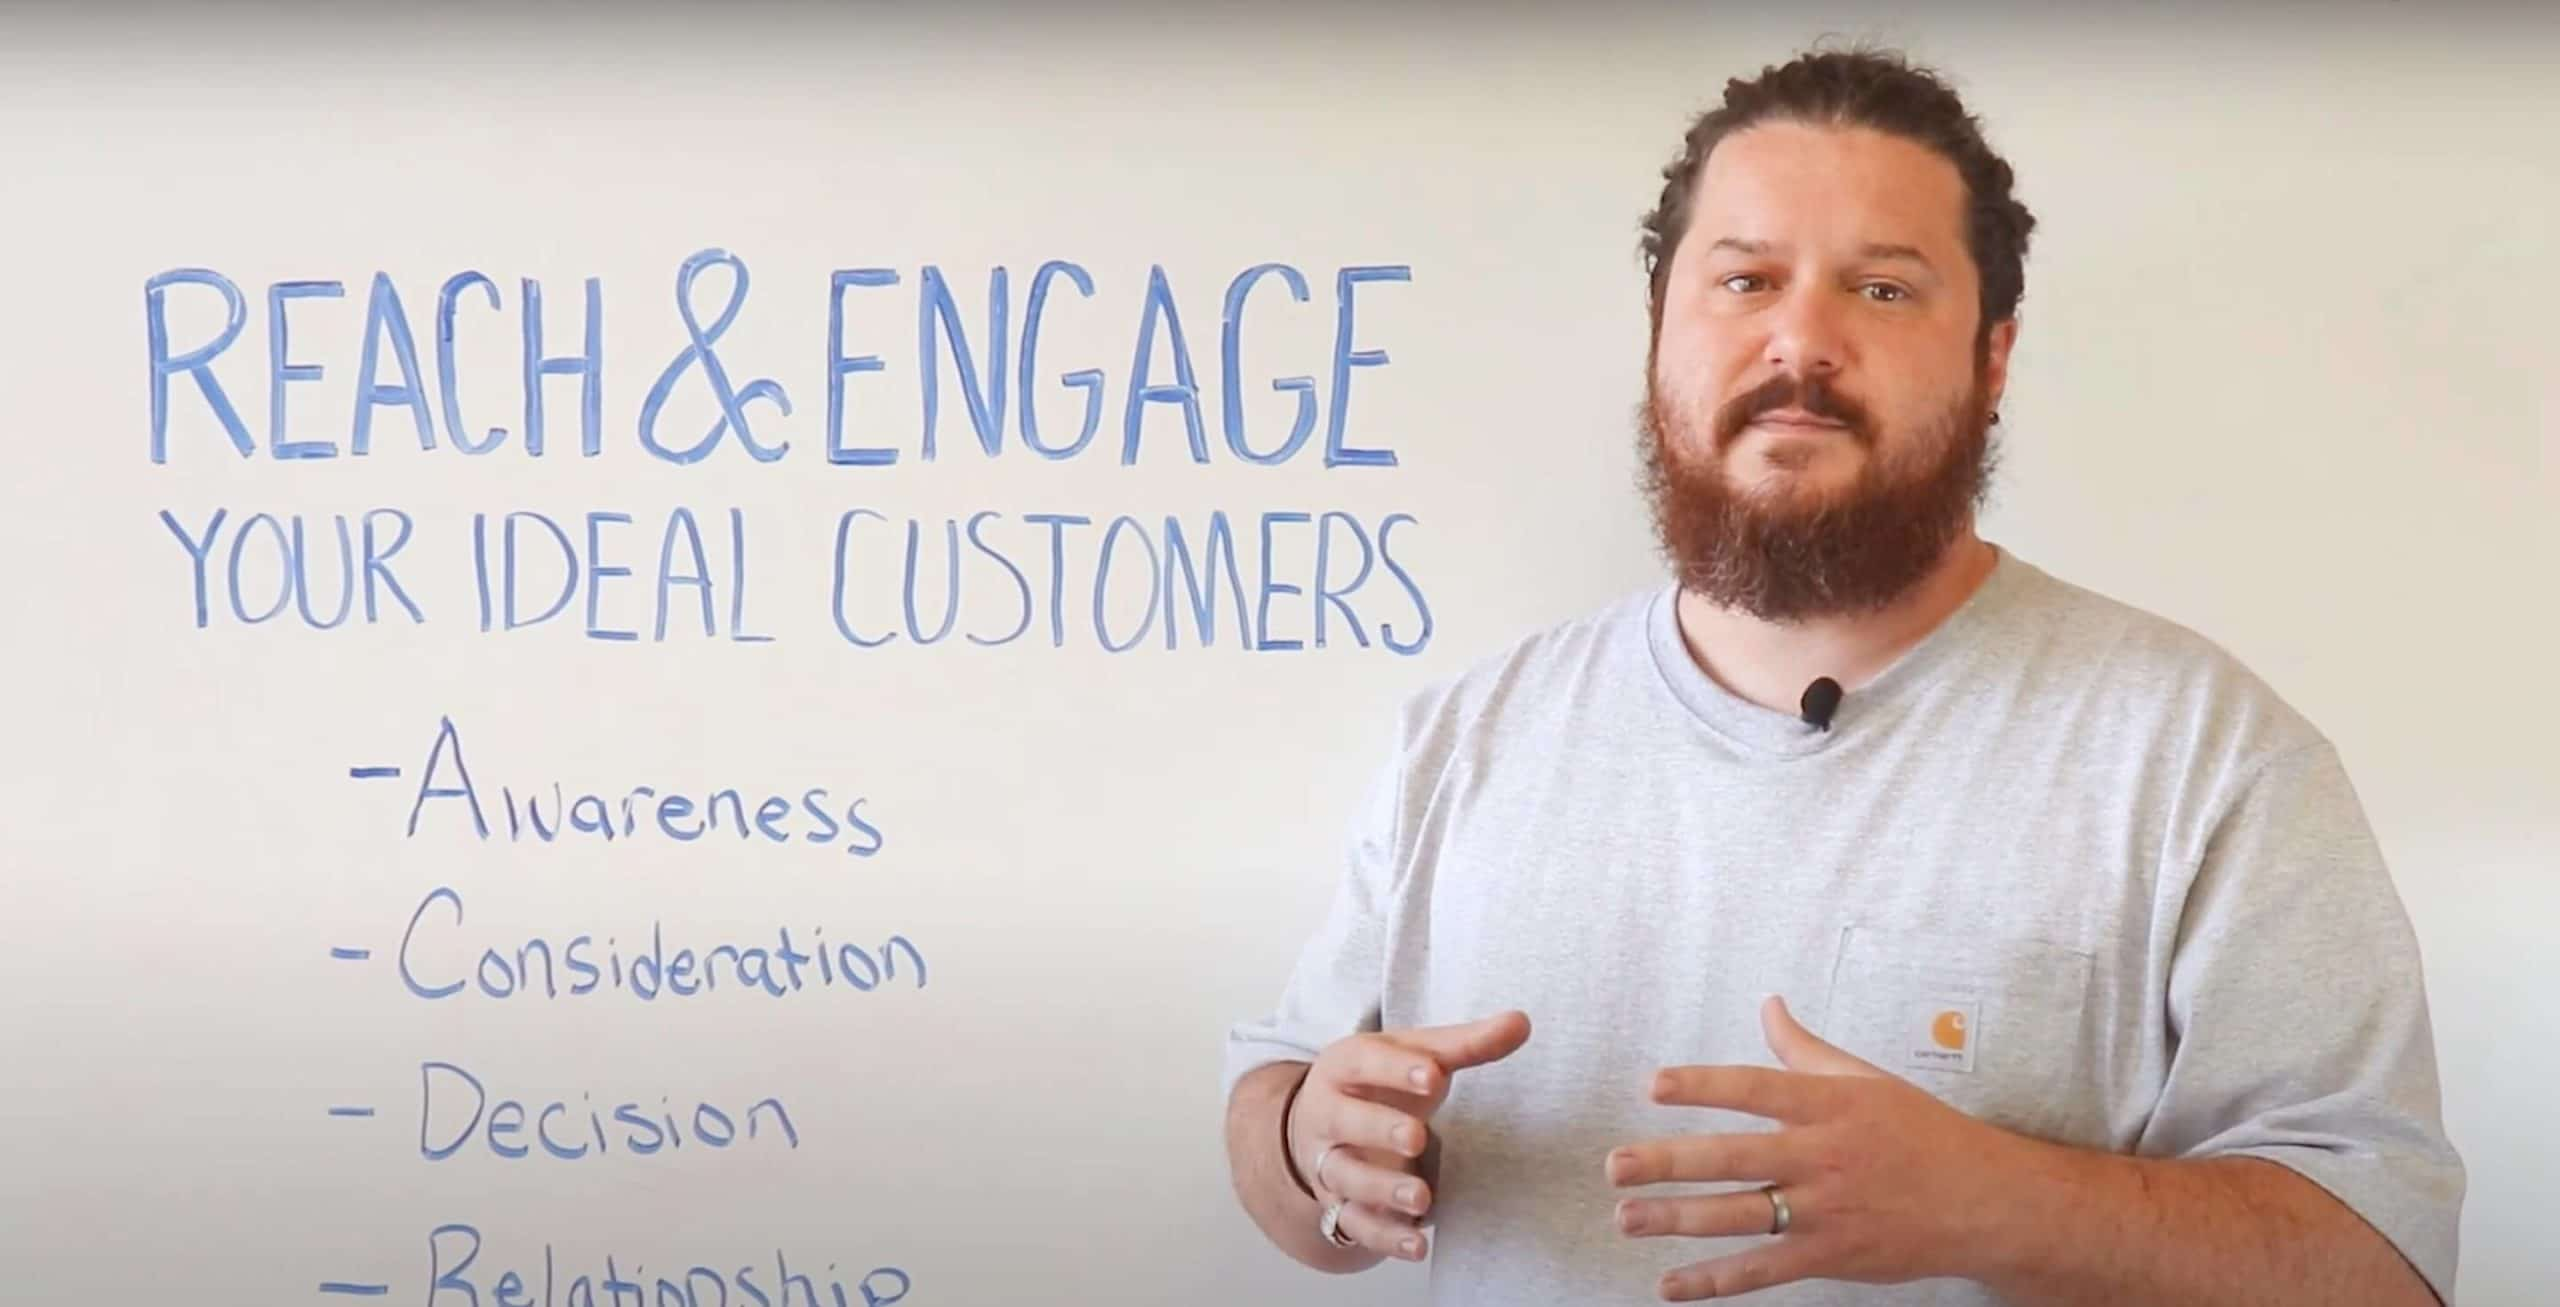 Reach Engage Ideal Customers